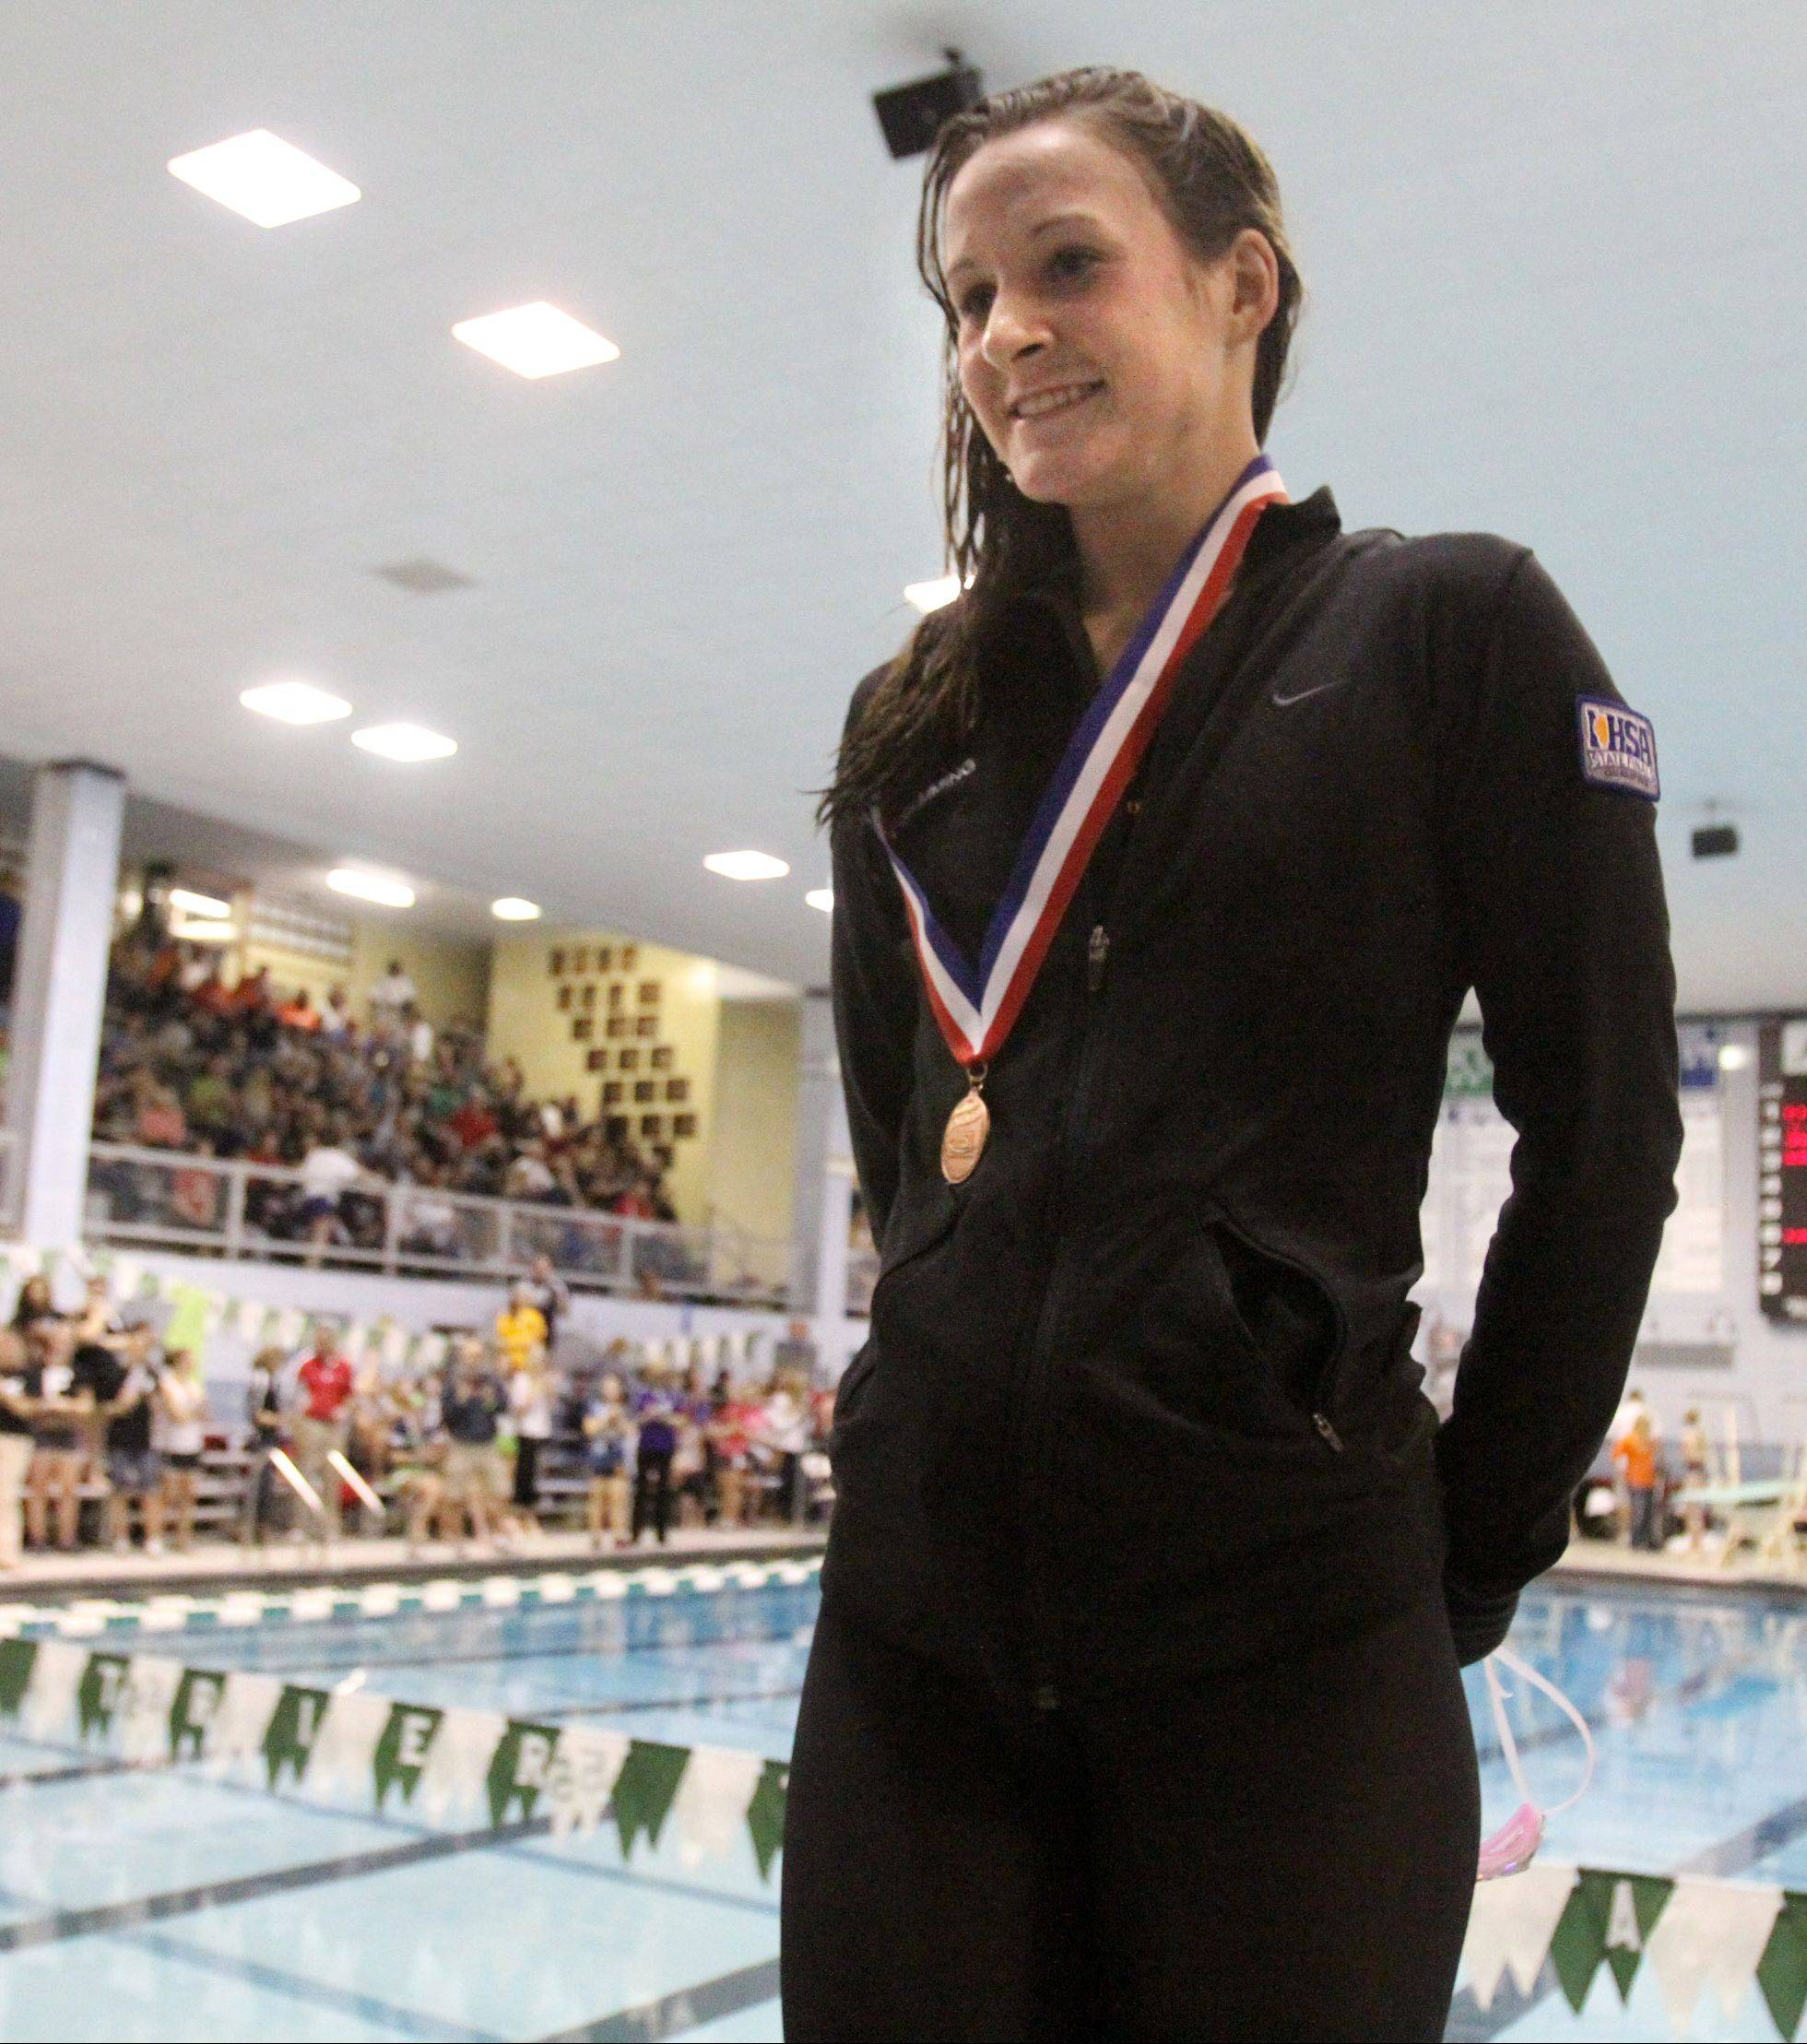 Prairie Ridge�s Marisa Barton placed third in the 50-yard freestyle at the state championships in Winnetka last fall. She�s back in action for her senior year.